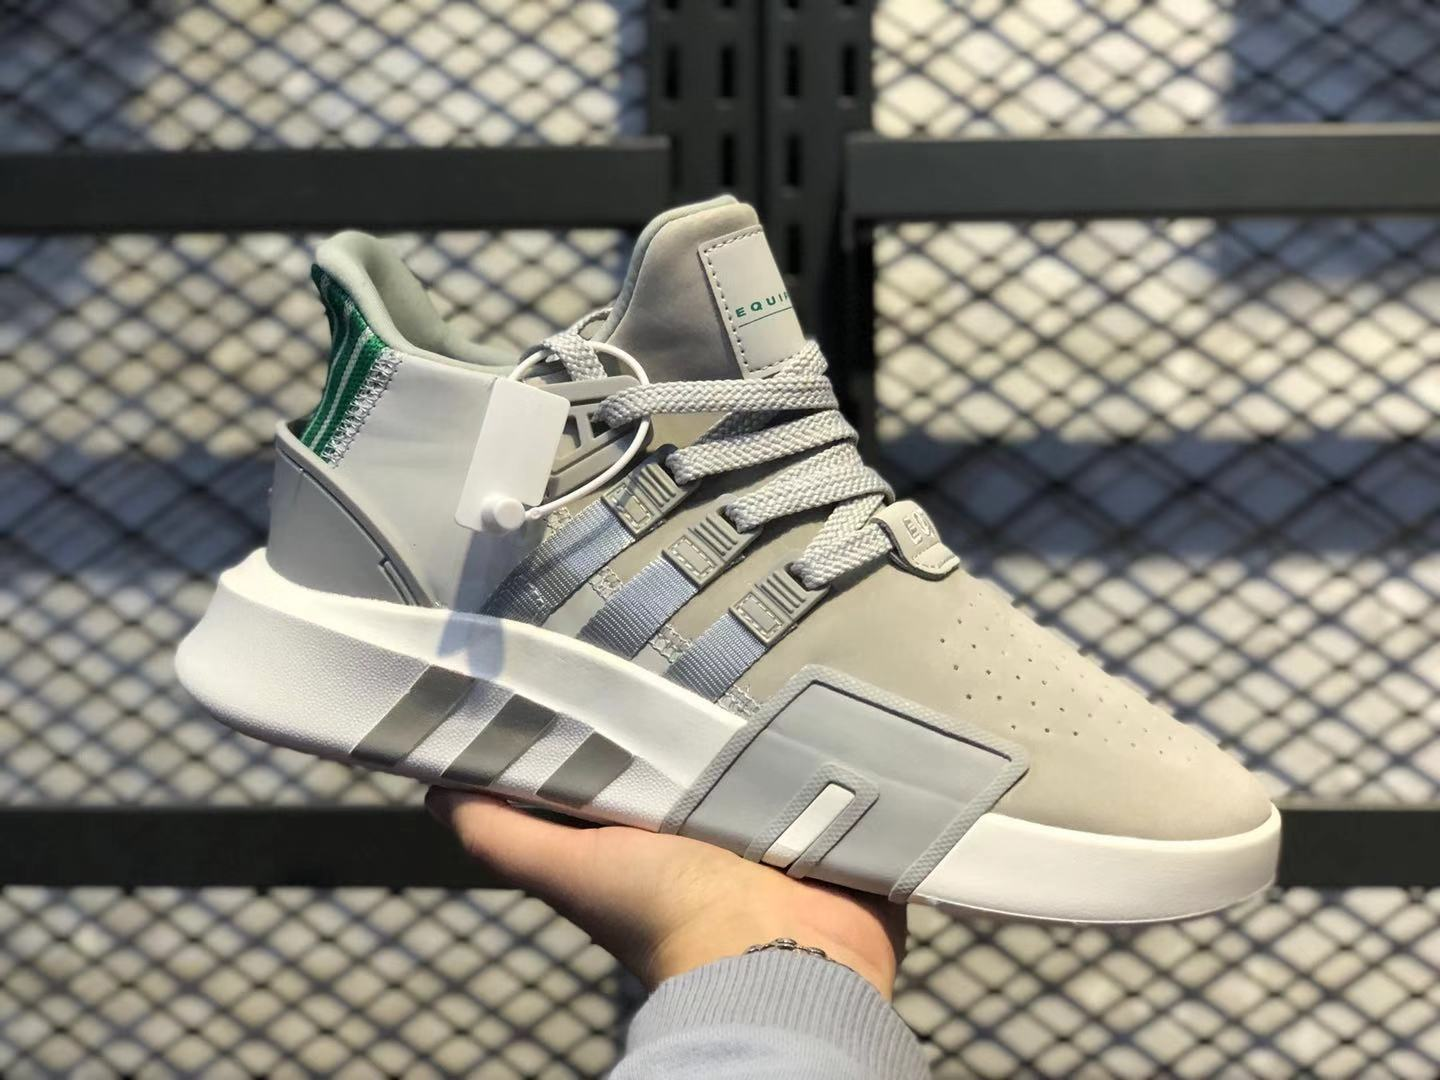 Adidas EQT Bask ADV Wolf Grey/Khaki-Green Basketball Shoes For Online Sale